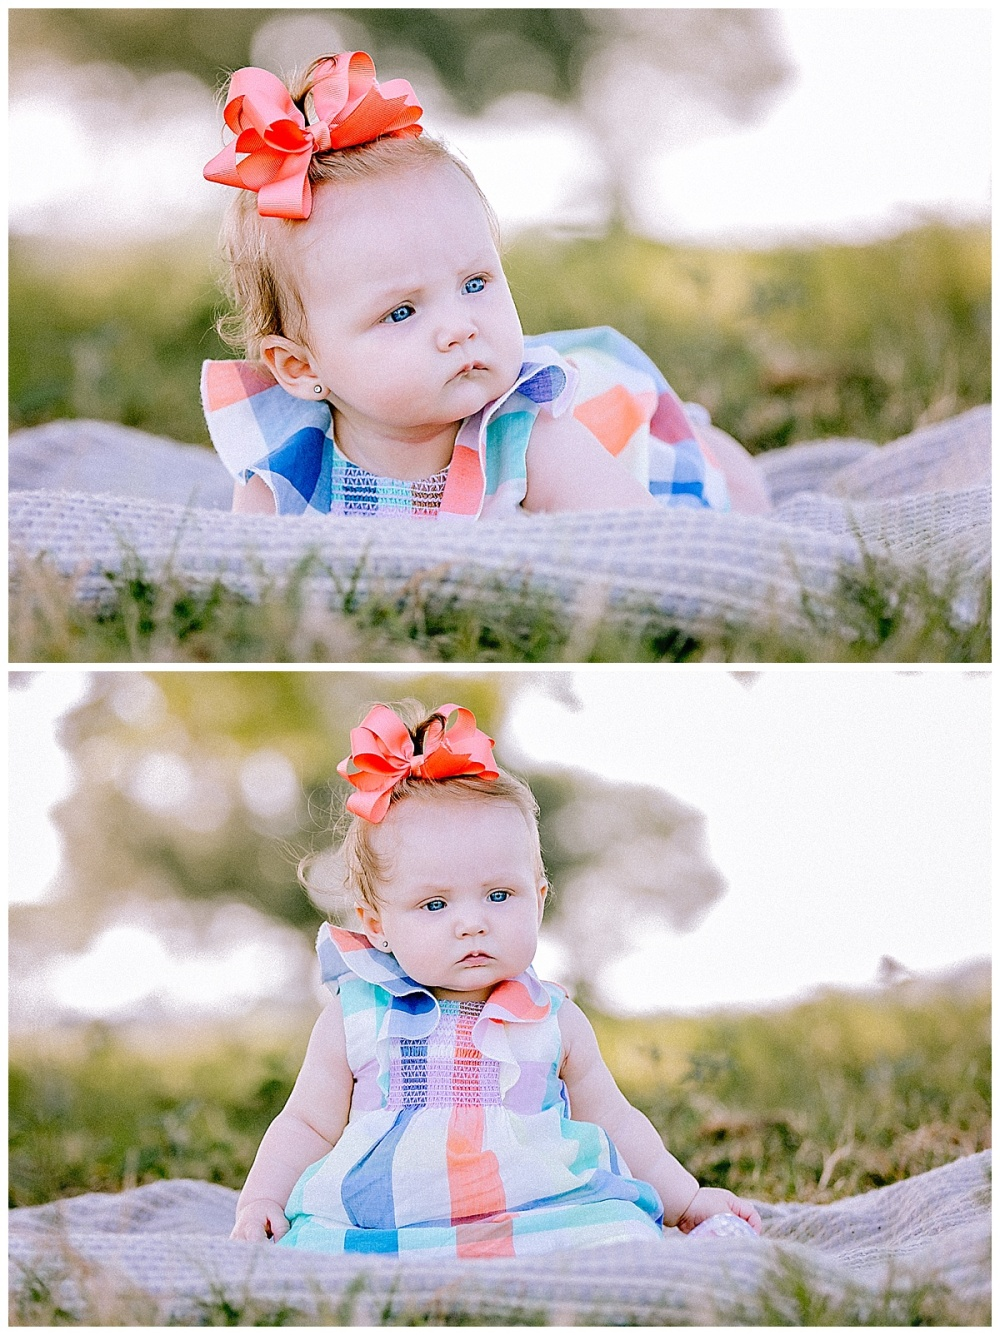 Carly-Barton-Photography-Family-Session-LaVernia-Texas-Saylor-6mos_0019.jpg